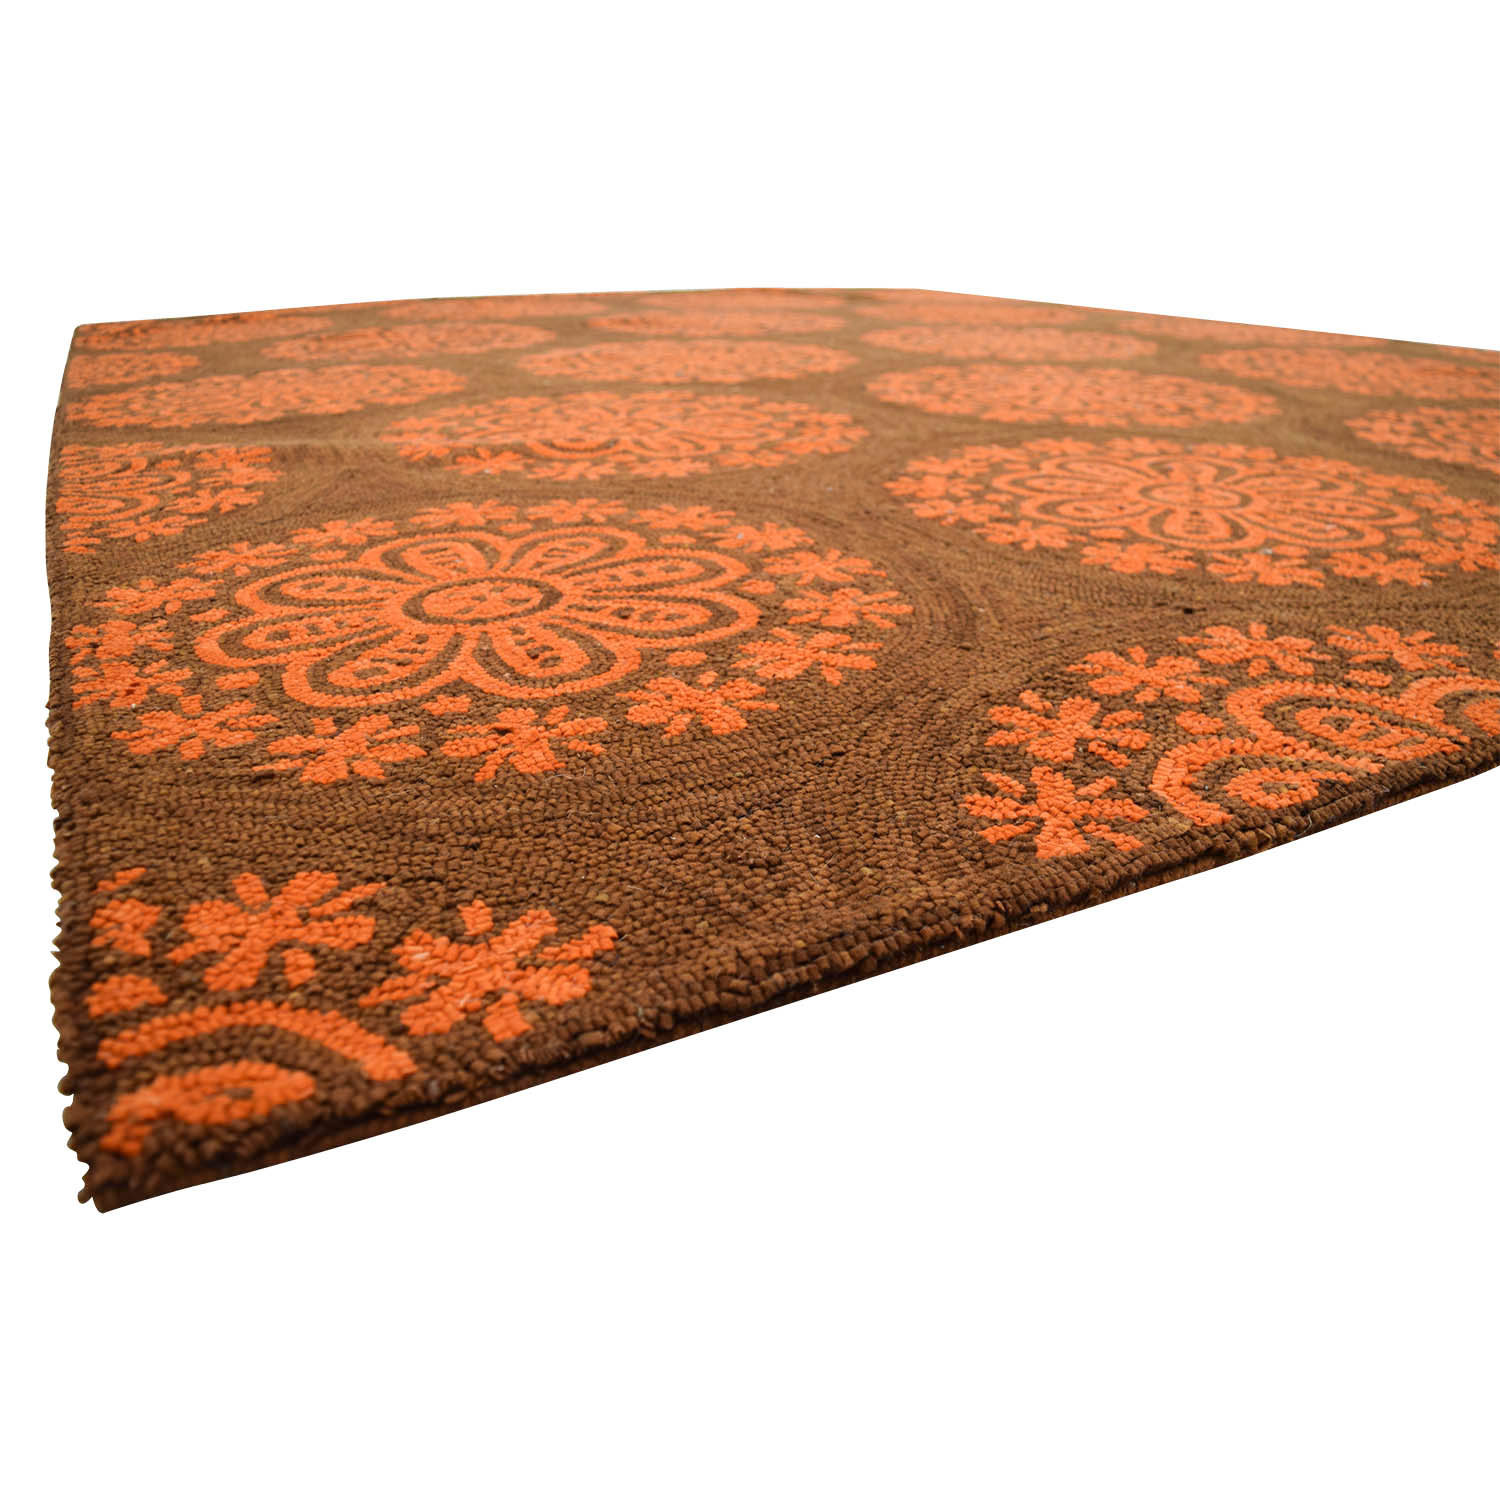 Obeetee Obeetee Brown and Orange Floral Mediallion Rug for sale